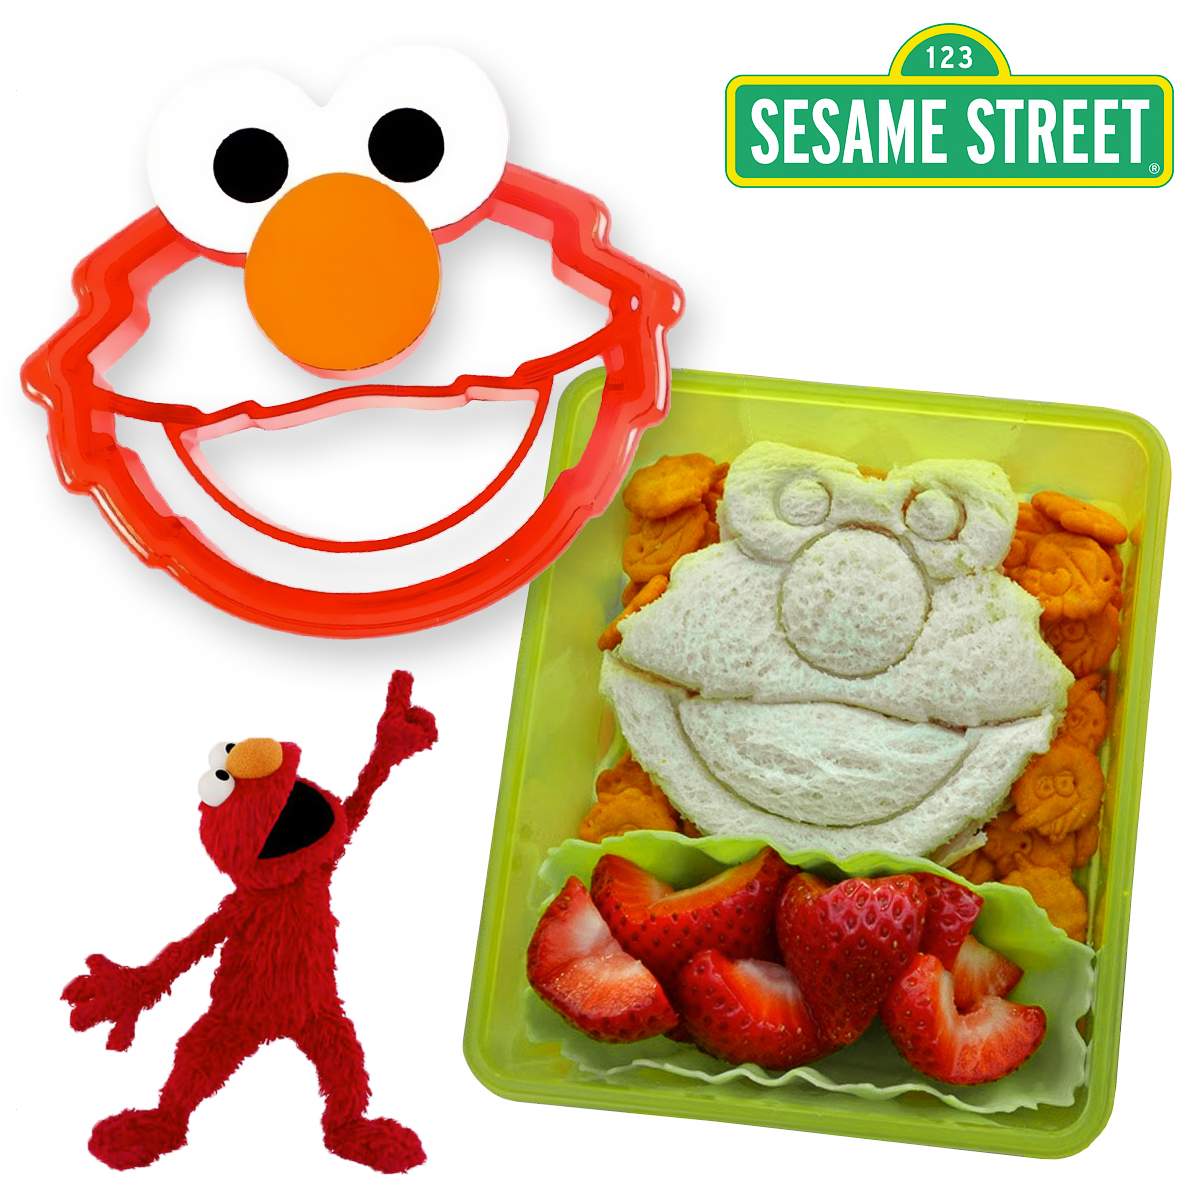 Elmo Evriholder Crust Cutter Bread Remover Sandwich Seasame Street Shapes Cutt'R